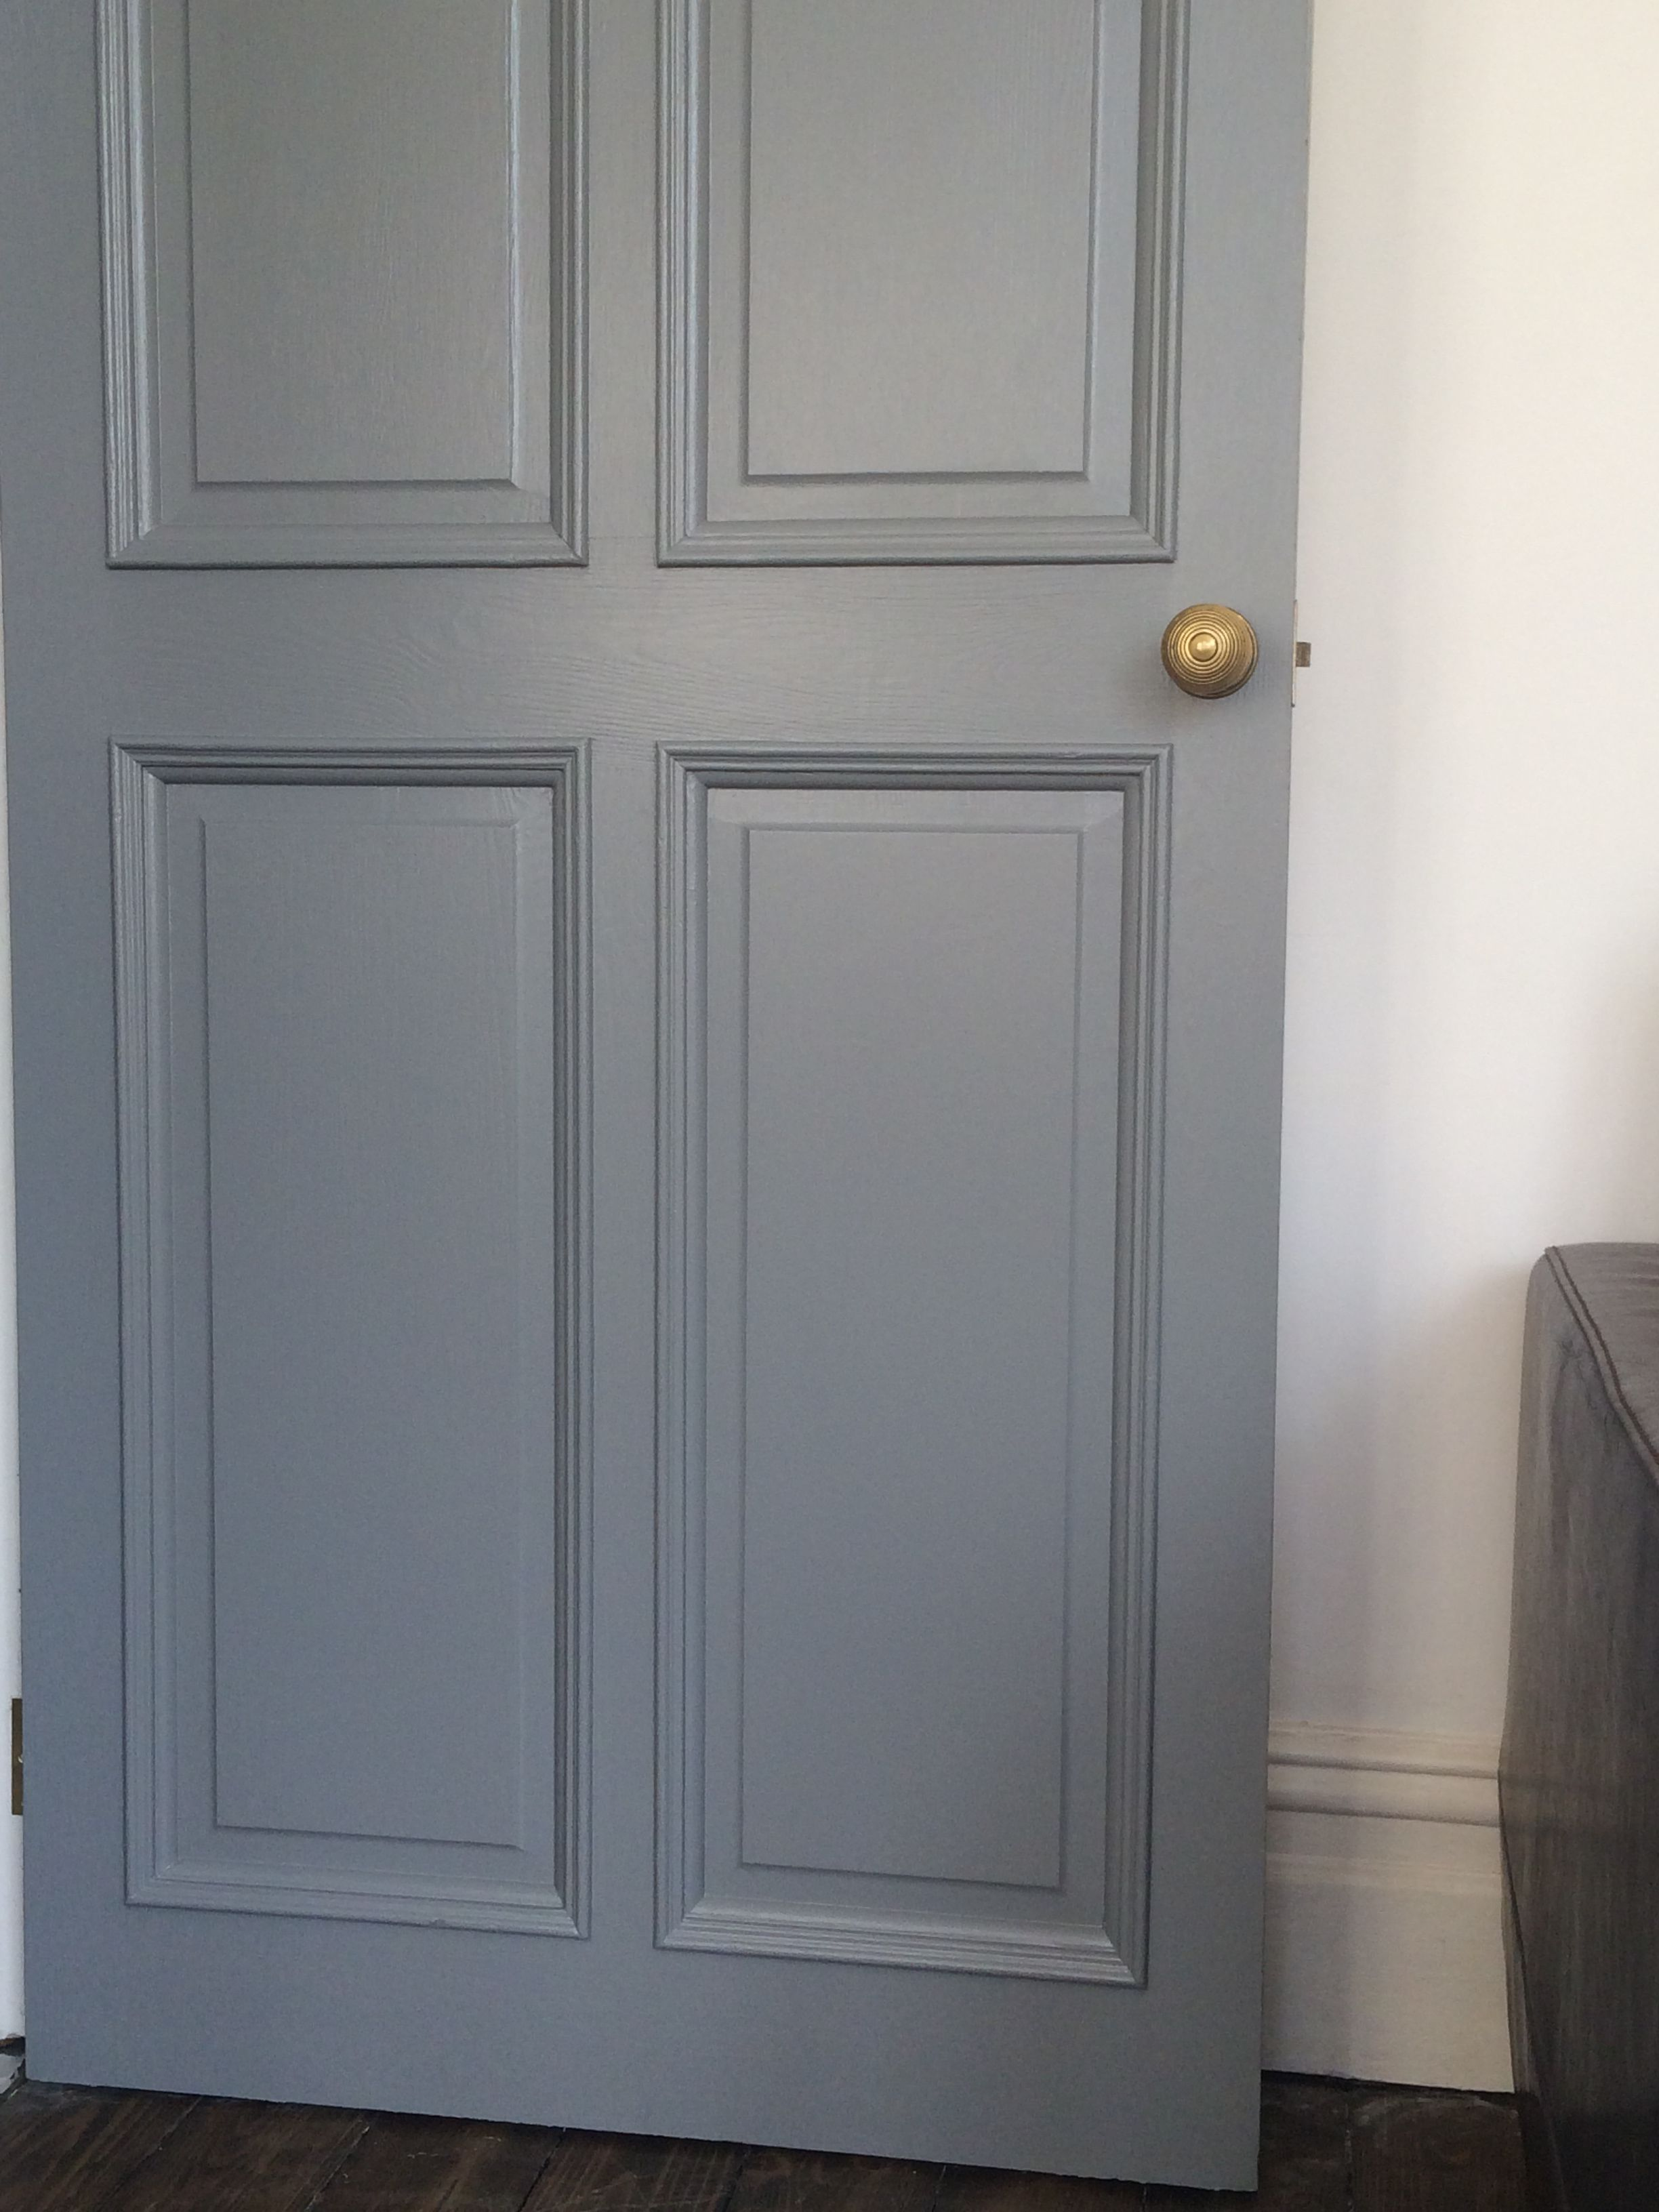 Door painted in farrow plummett eggshell